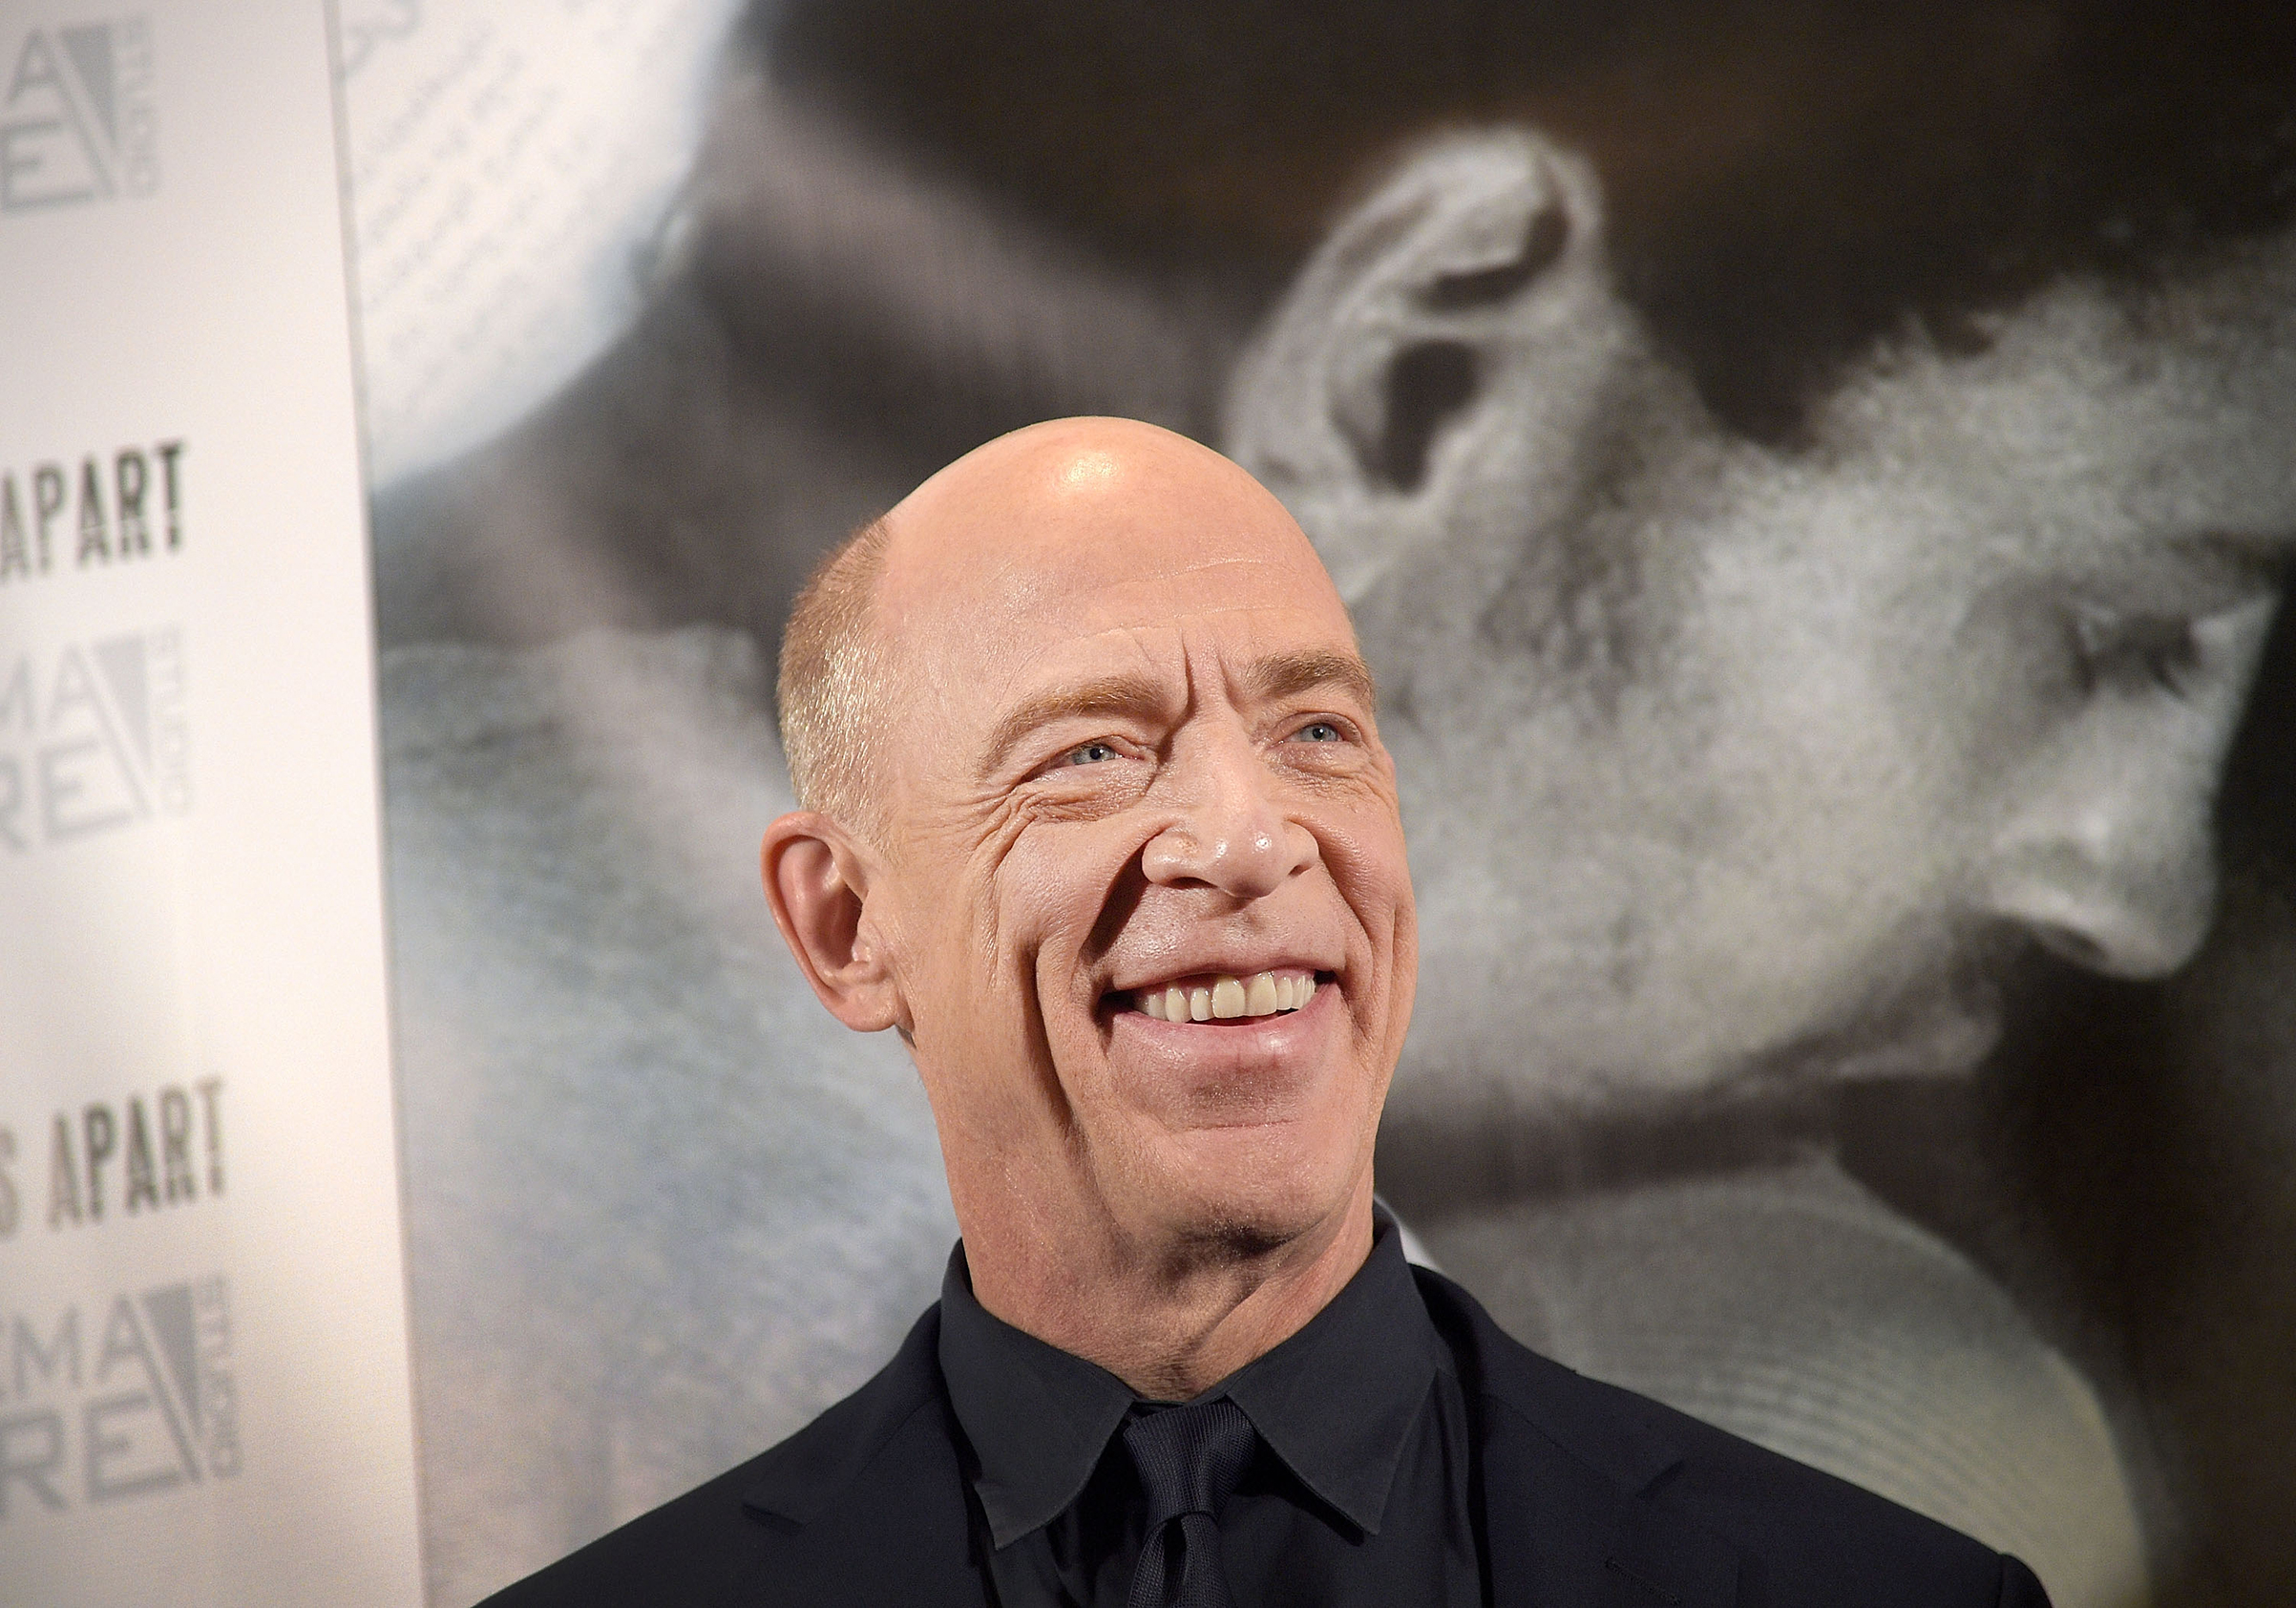 Actor J. K. Simmons attends the premiere of  Worlds Apart  at Village East Cinema on January 13, 2017 in New York City.